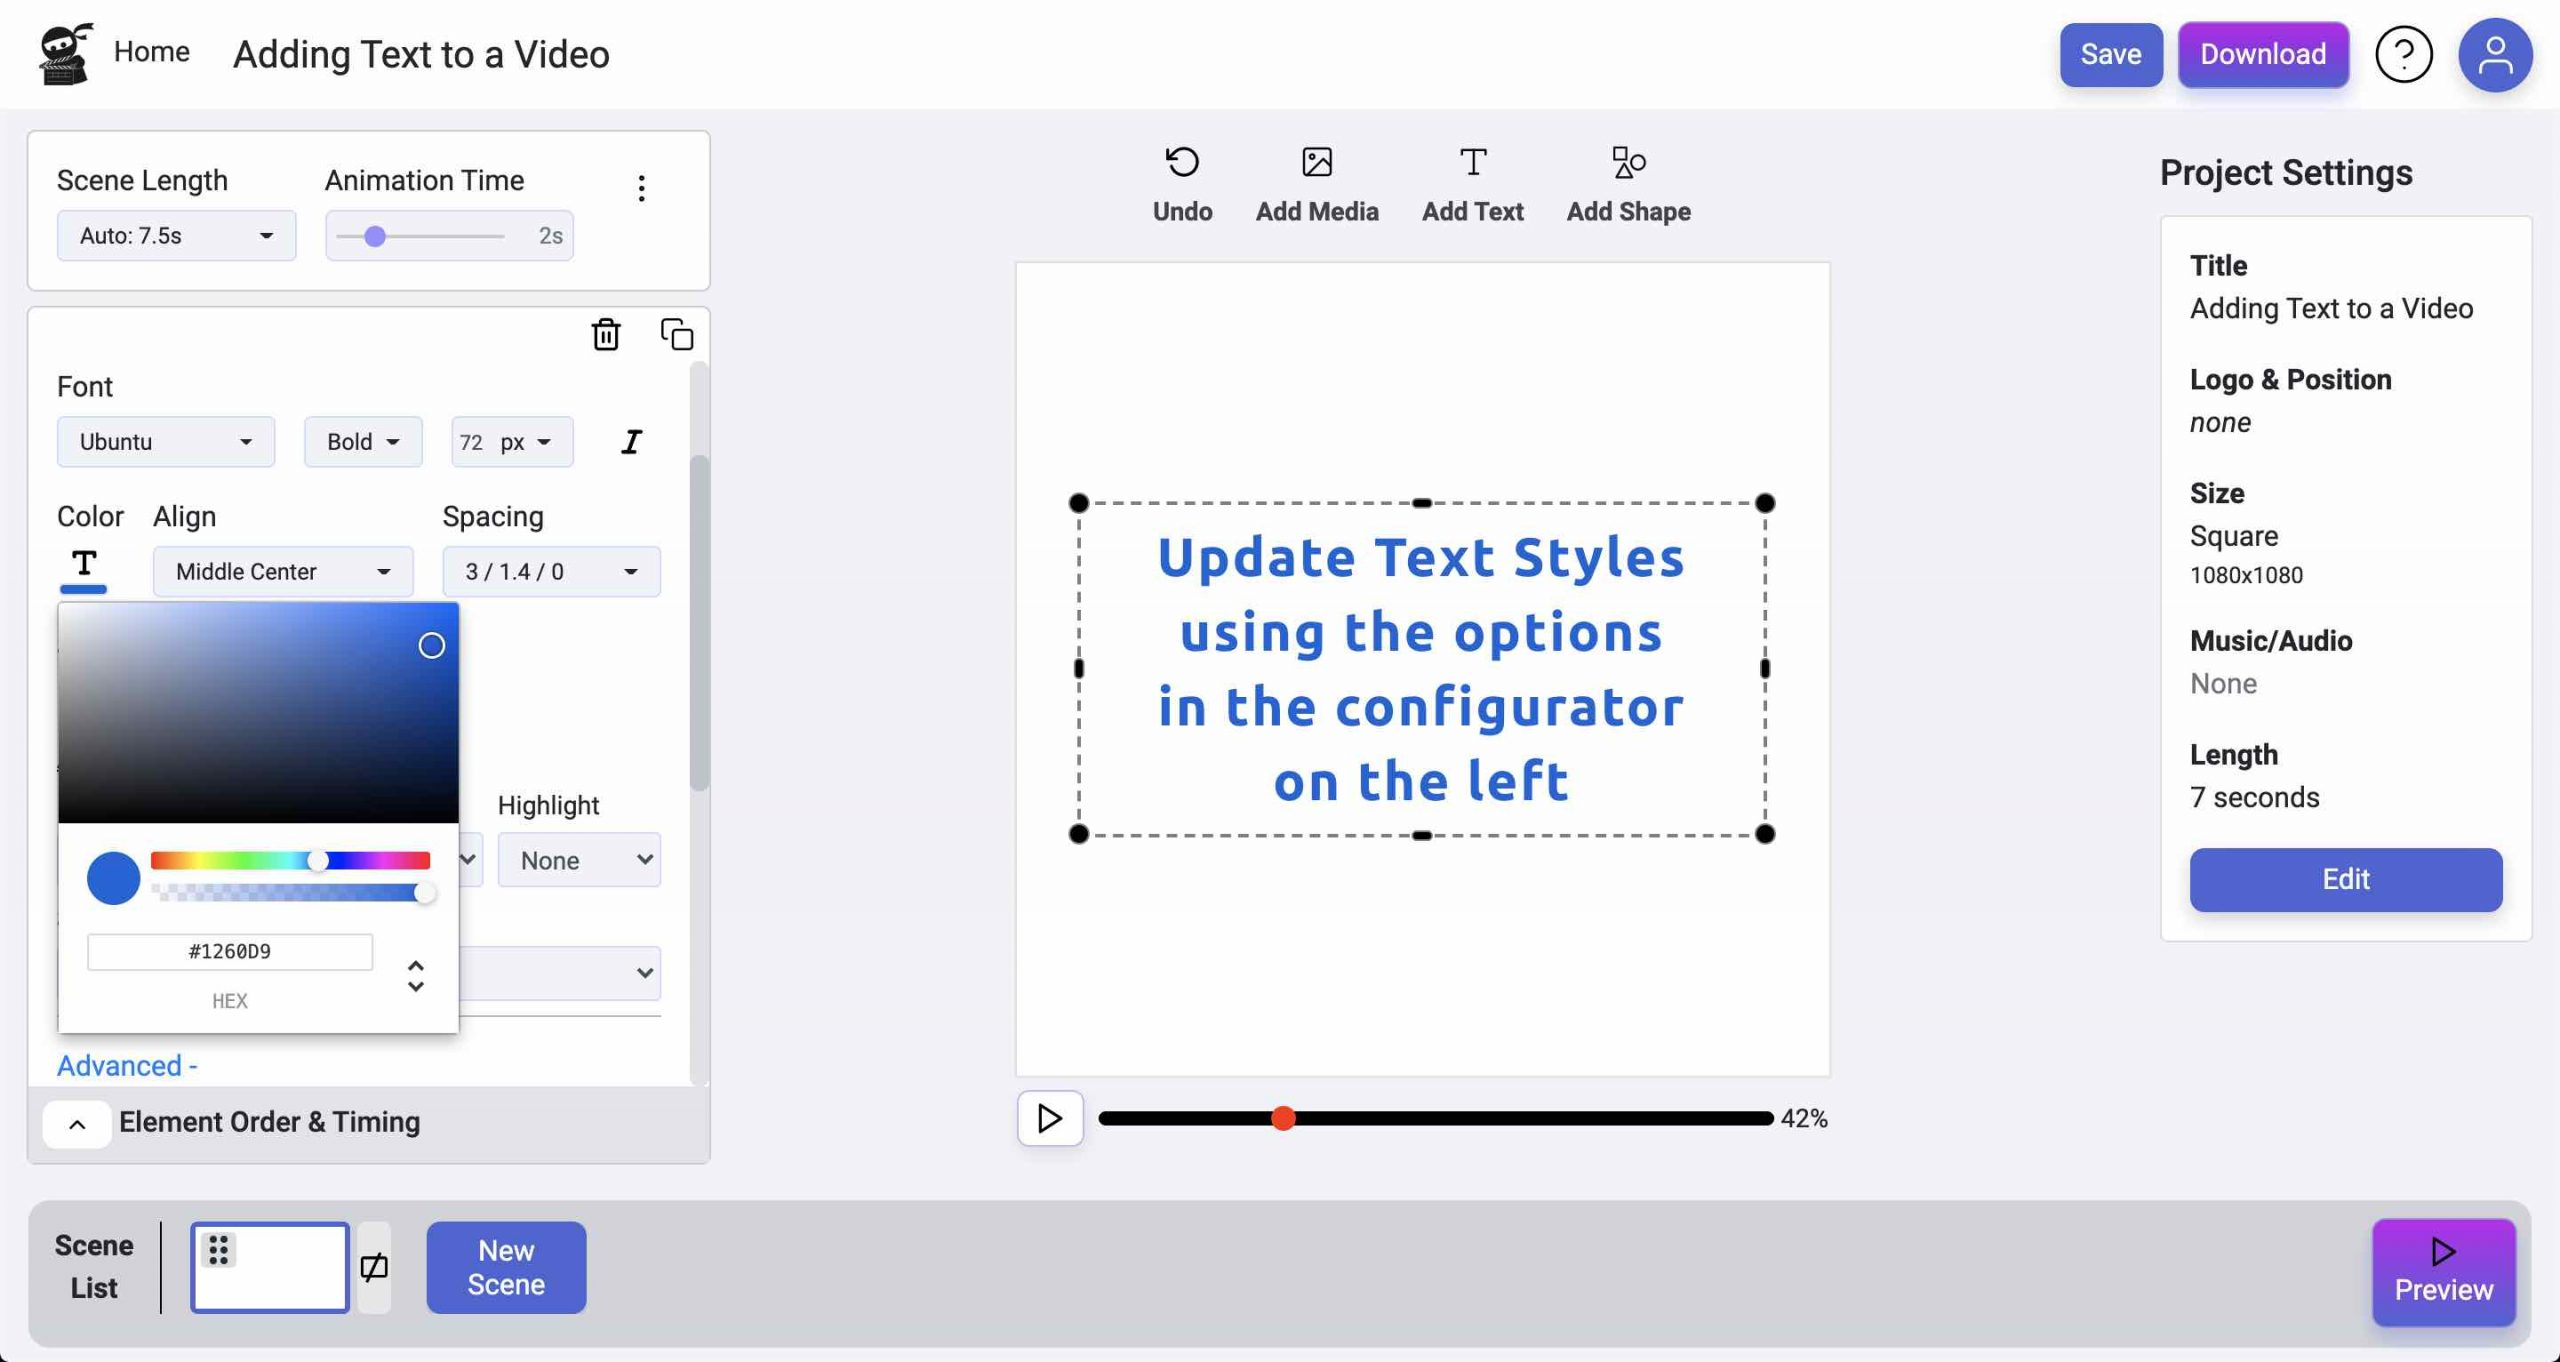 Update Text Styles - Add Text to Videos